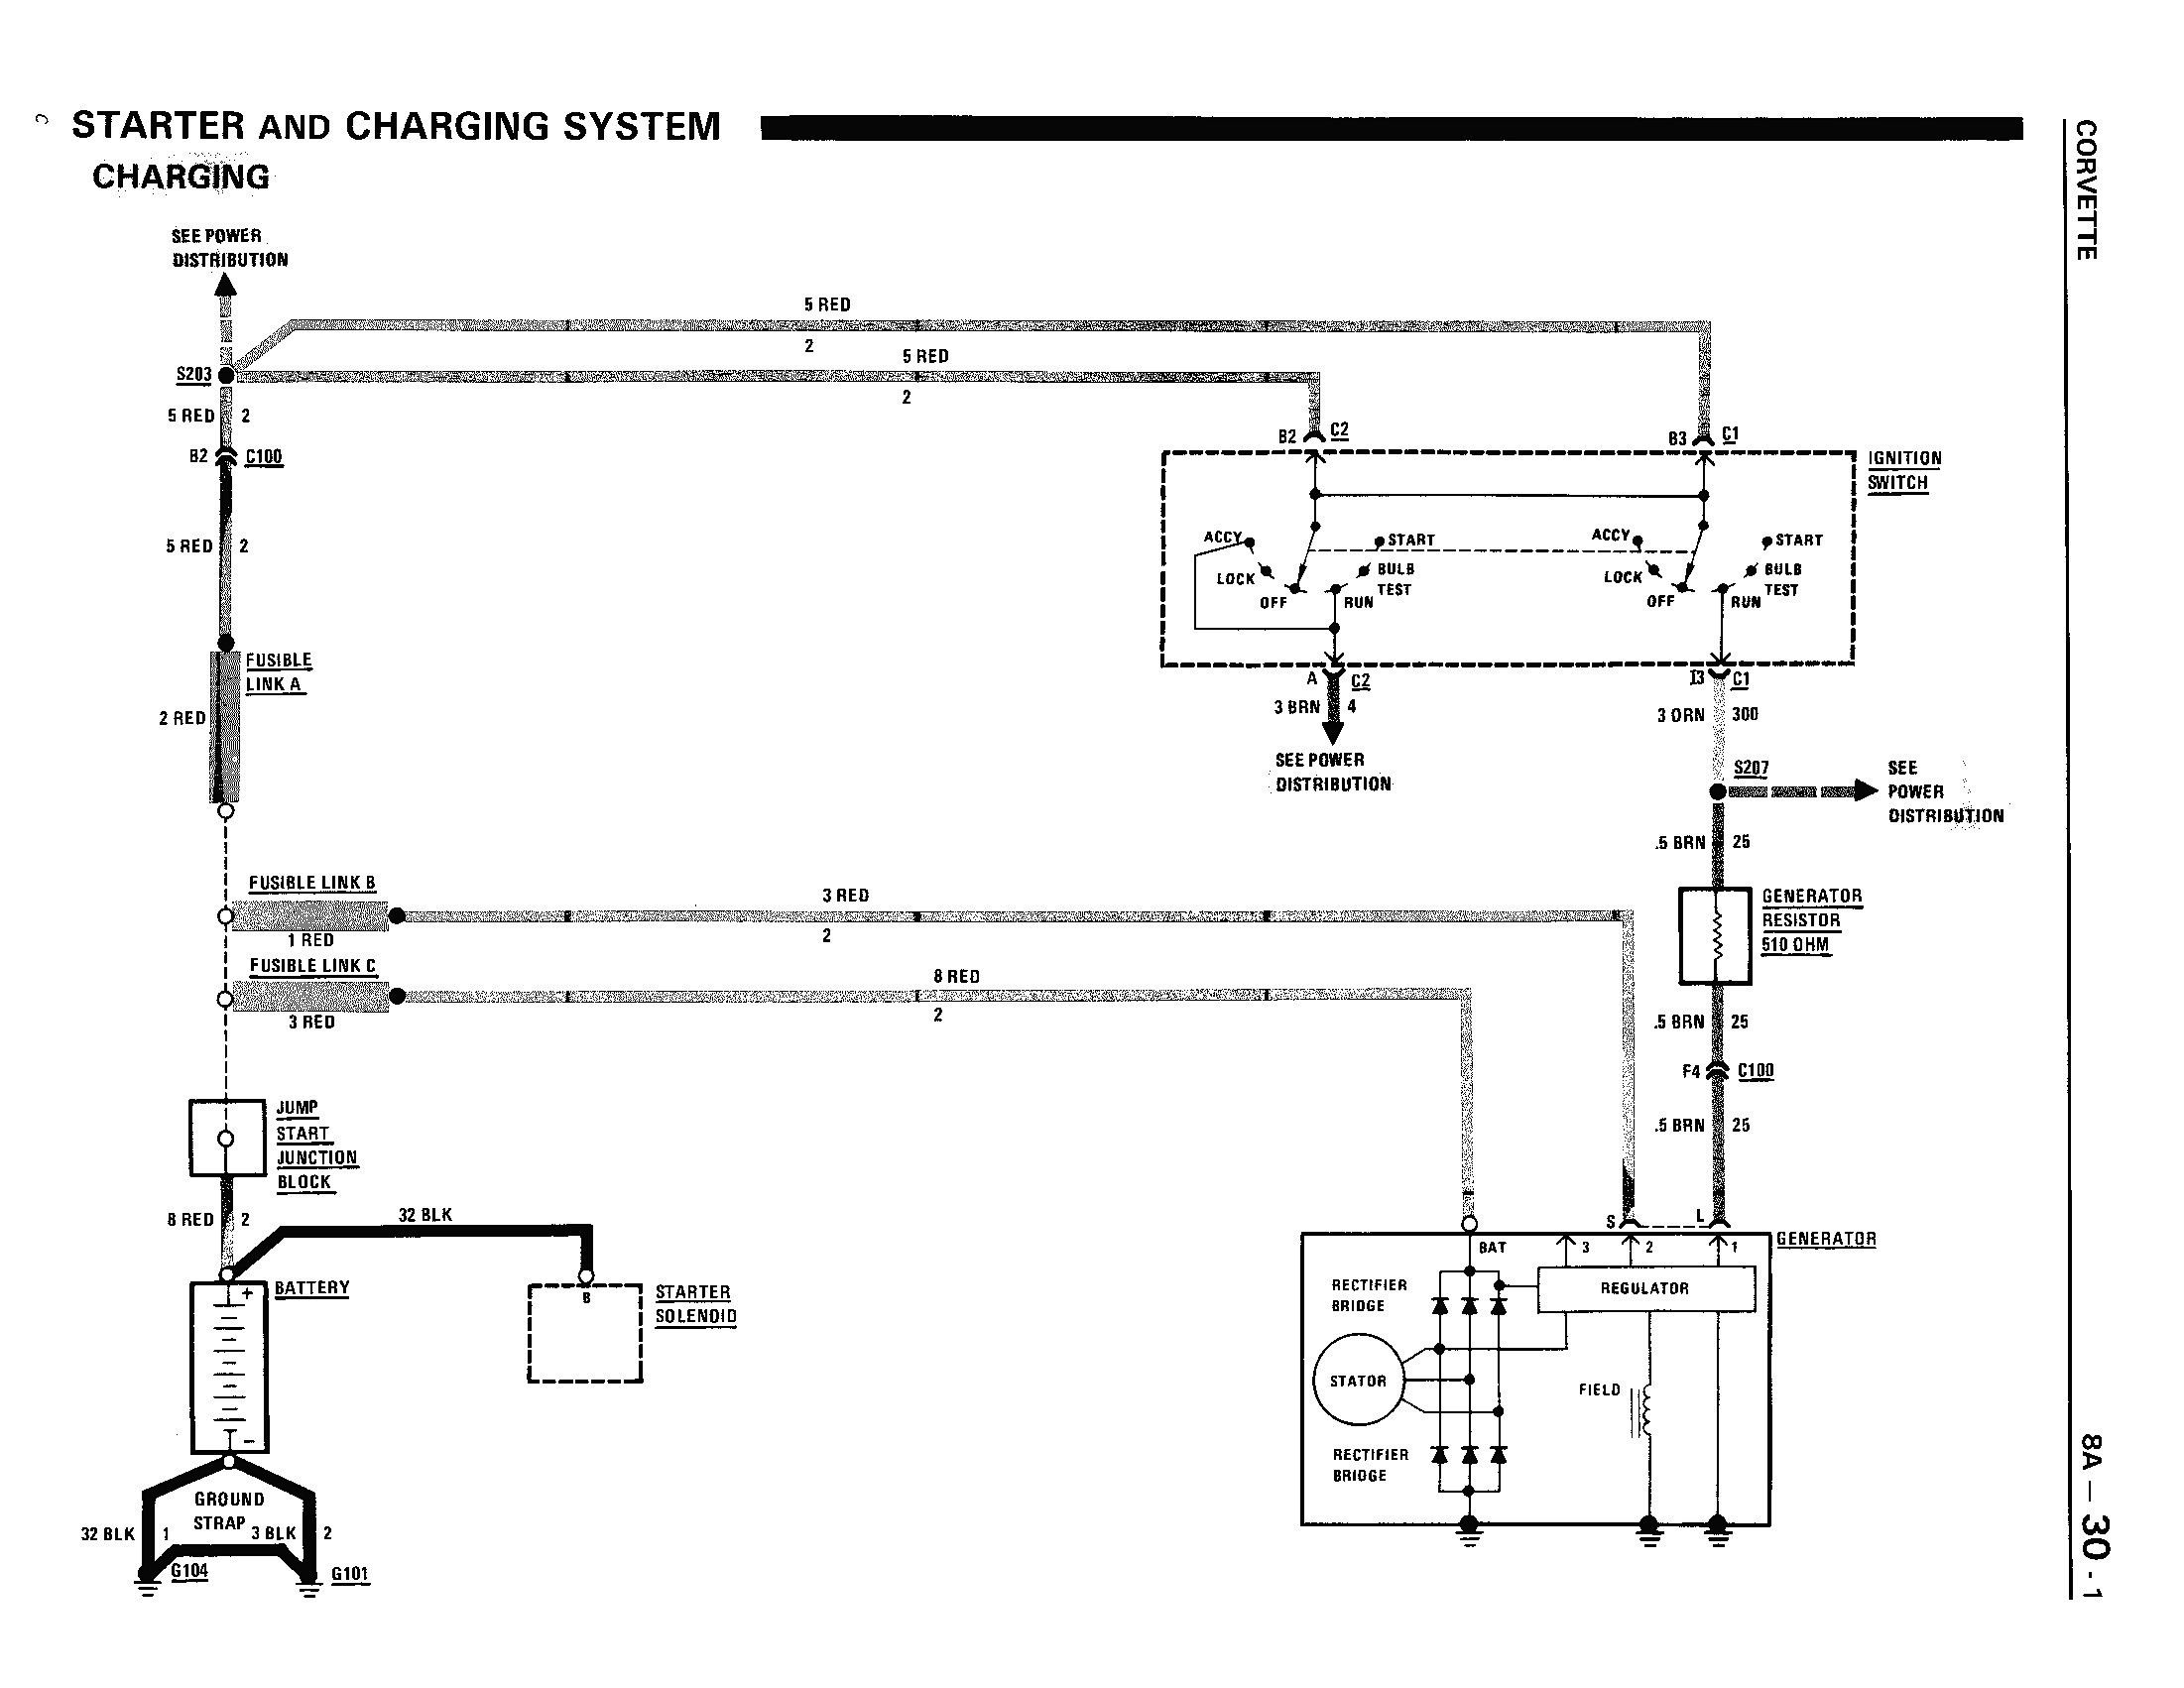 Unique Skytronics Alternator Wiring Diagram Diagrams Digramssample Diagramimages Check More At Https Nostoc Co Skytronics Alternat Diagram System Corvette